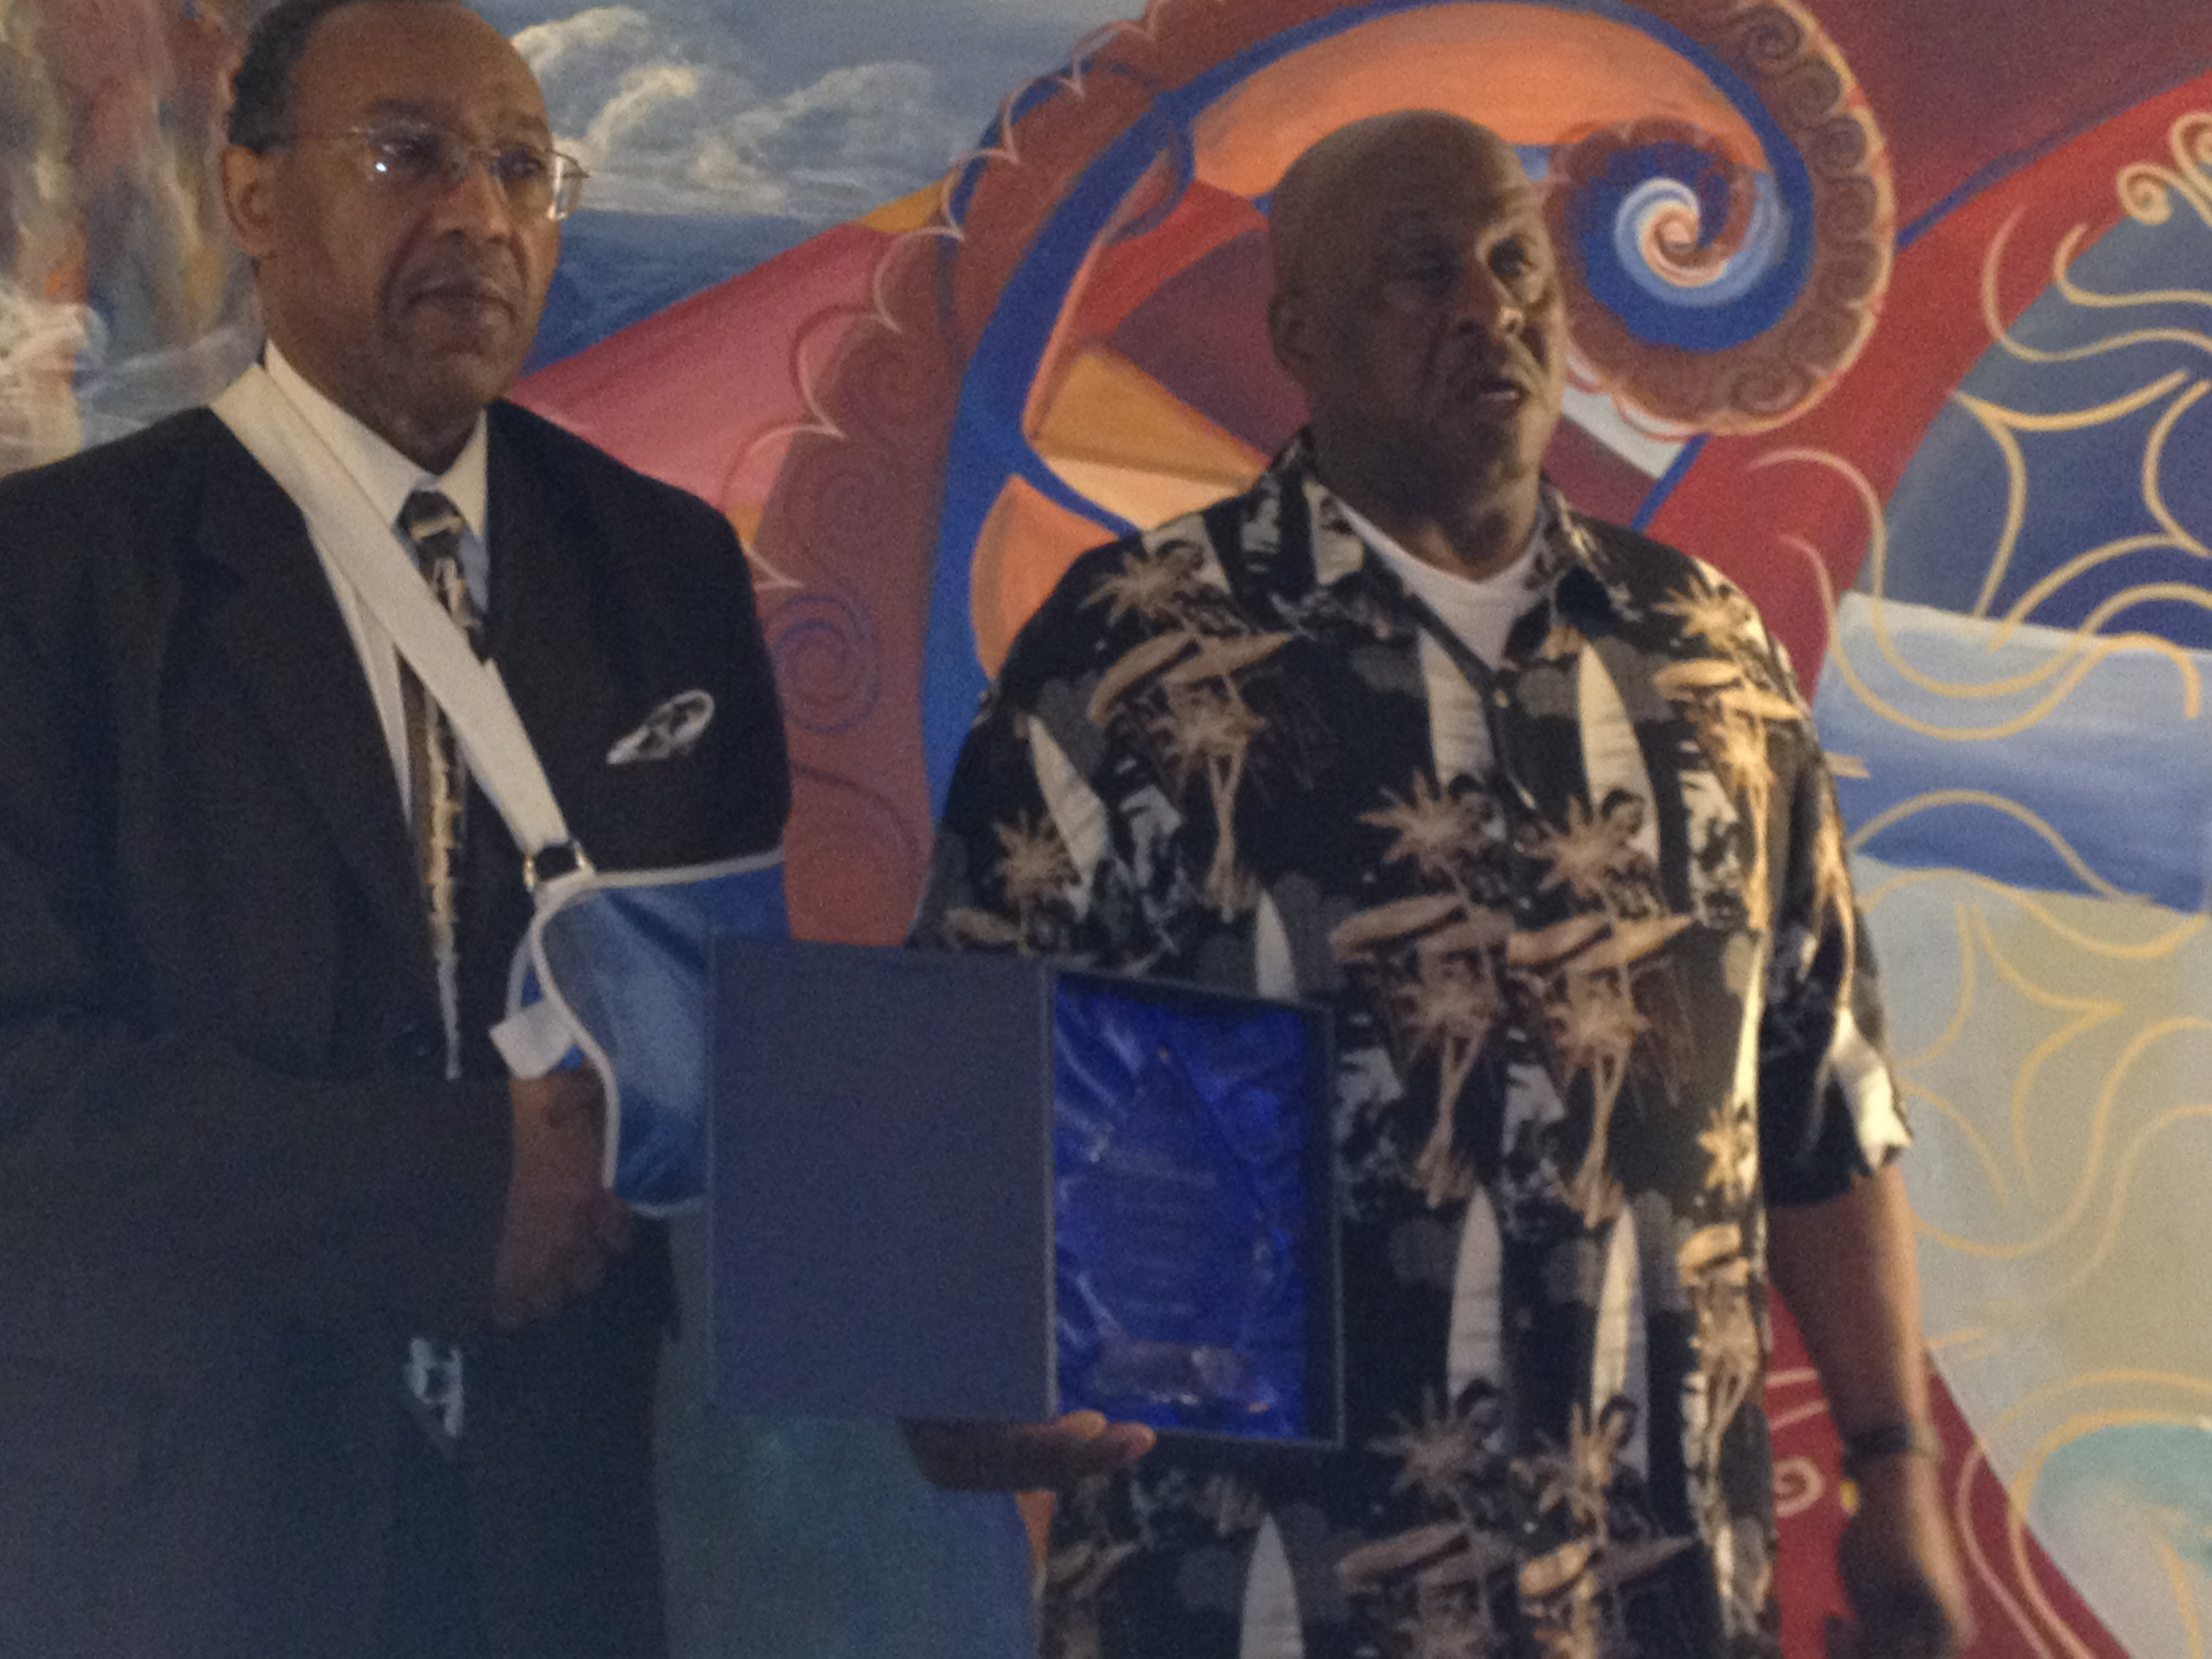 Committeeman Curtis Lacy Honored for his Lifetime of Service to the Chicago Republican Party